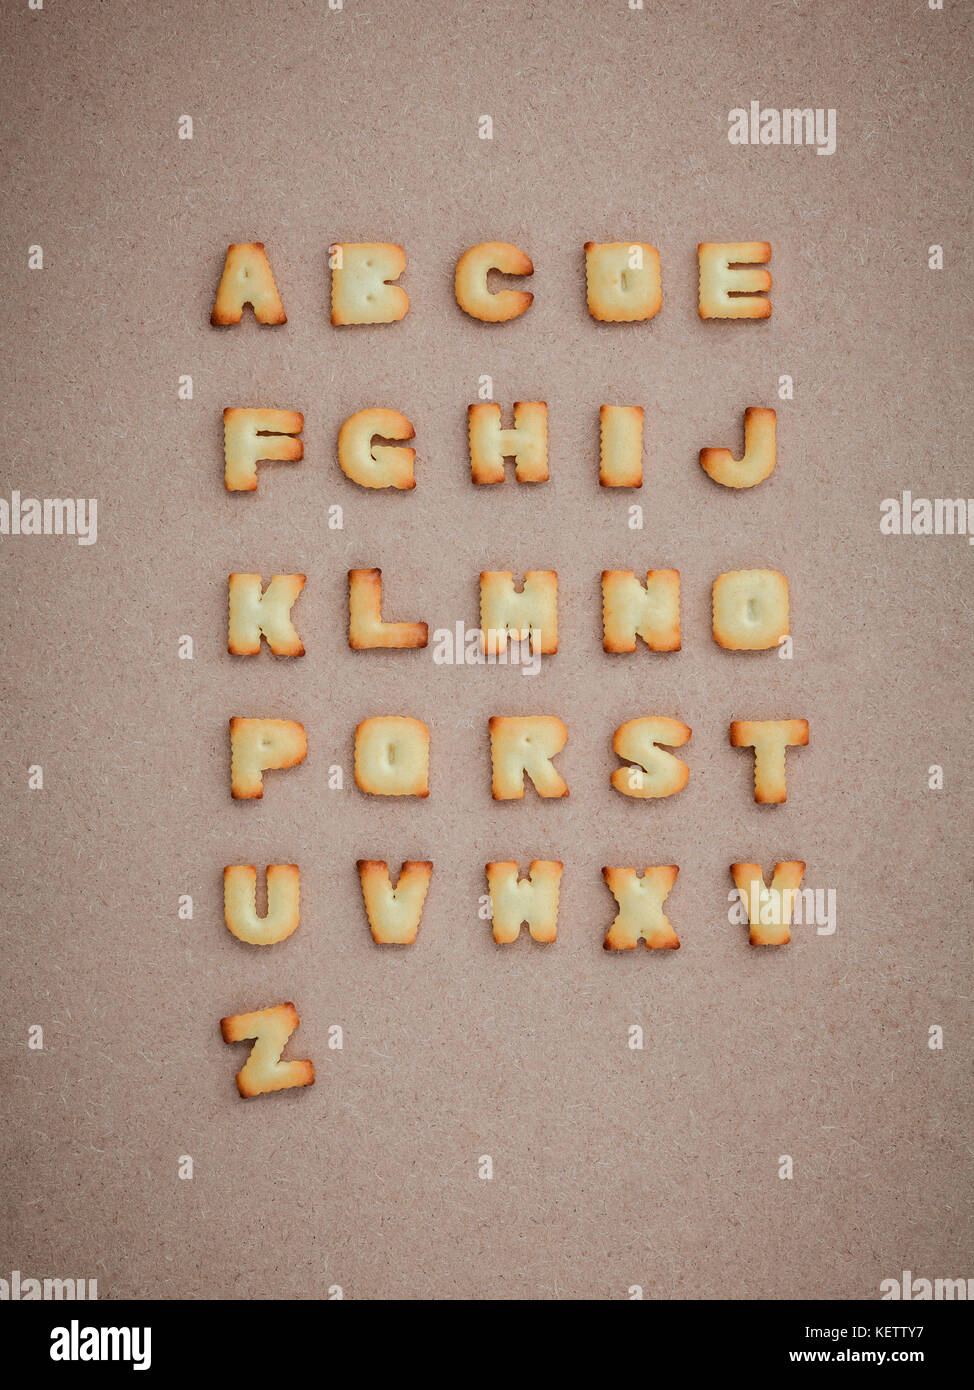 Cookies abc sous la forme d'alphabet a-z sur fond de carton brun, Valentines Day Photo Stock